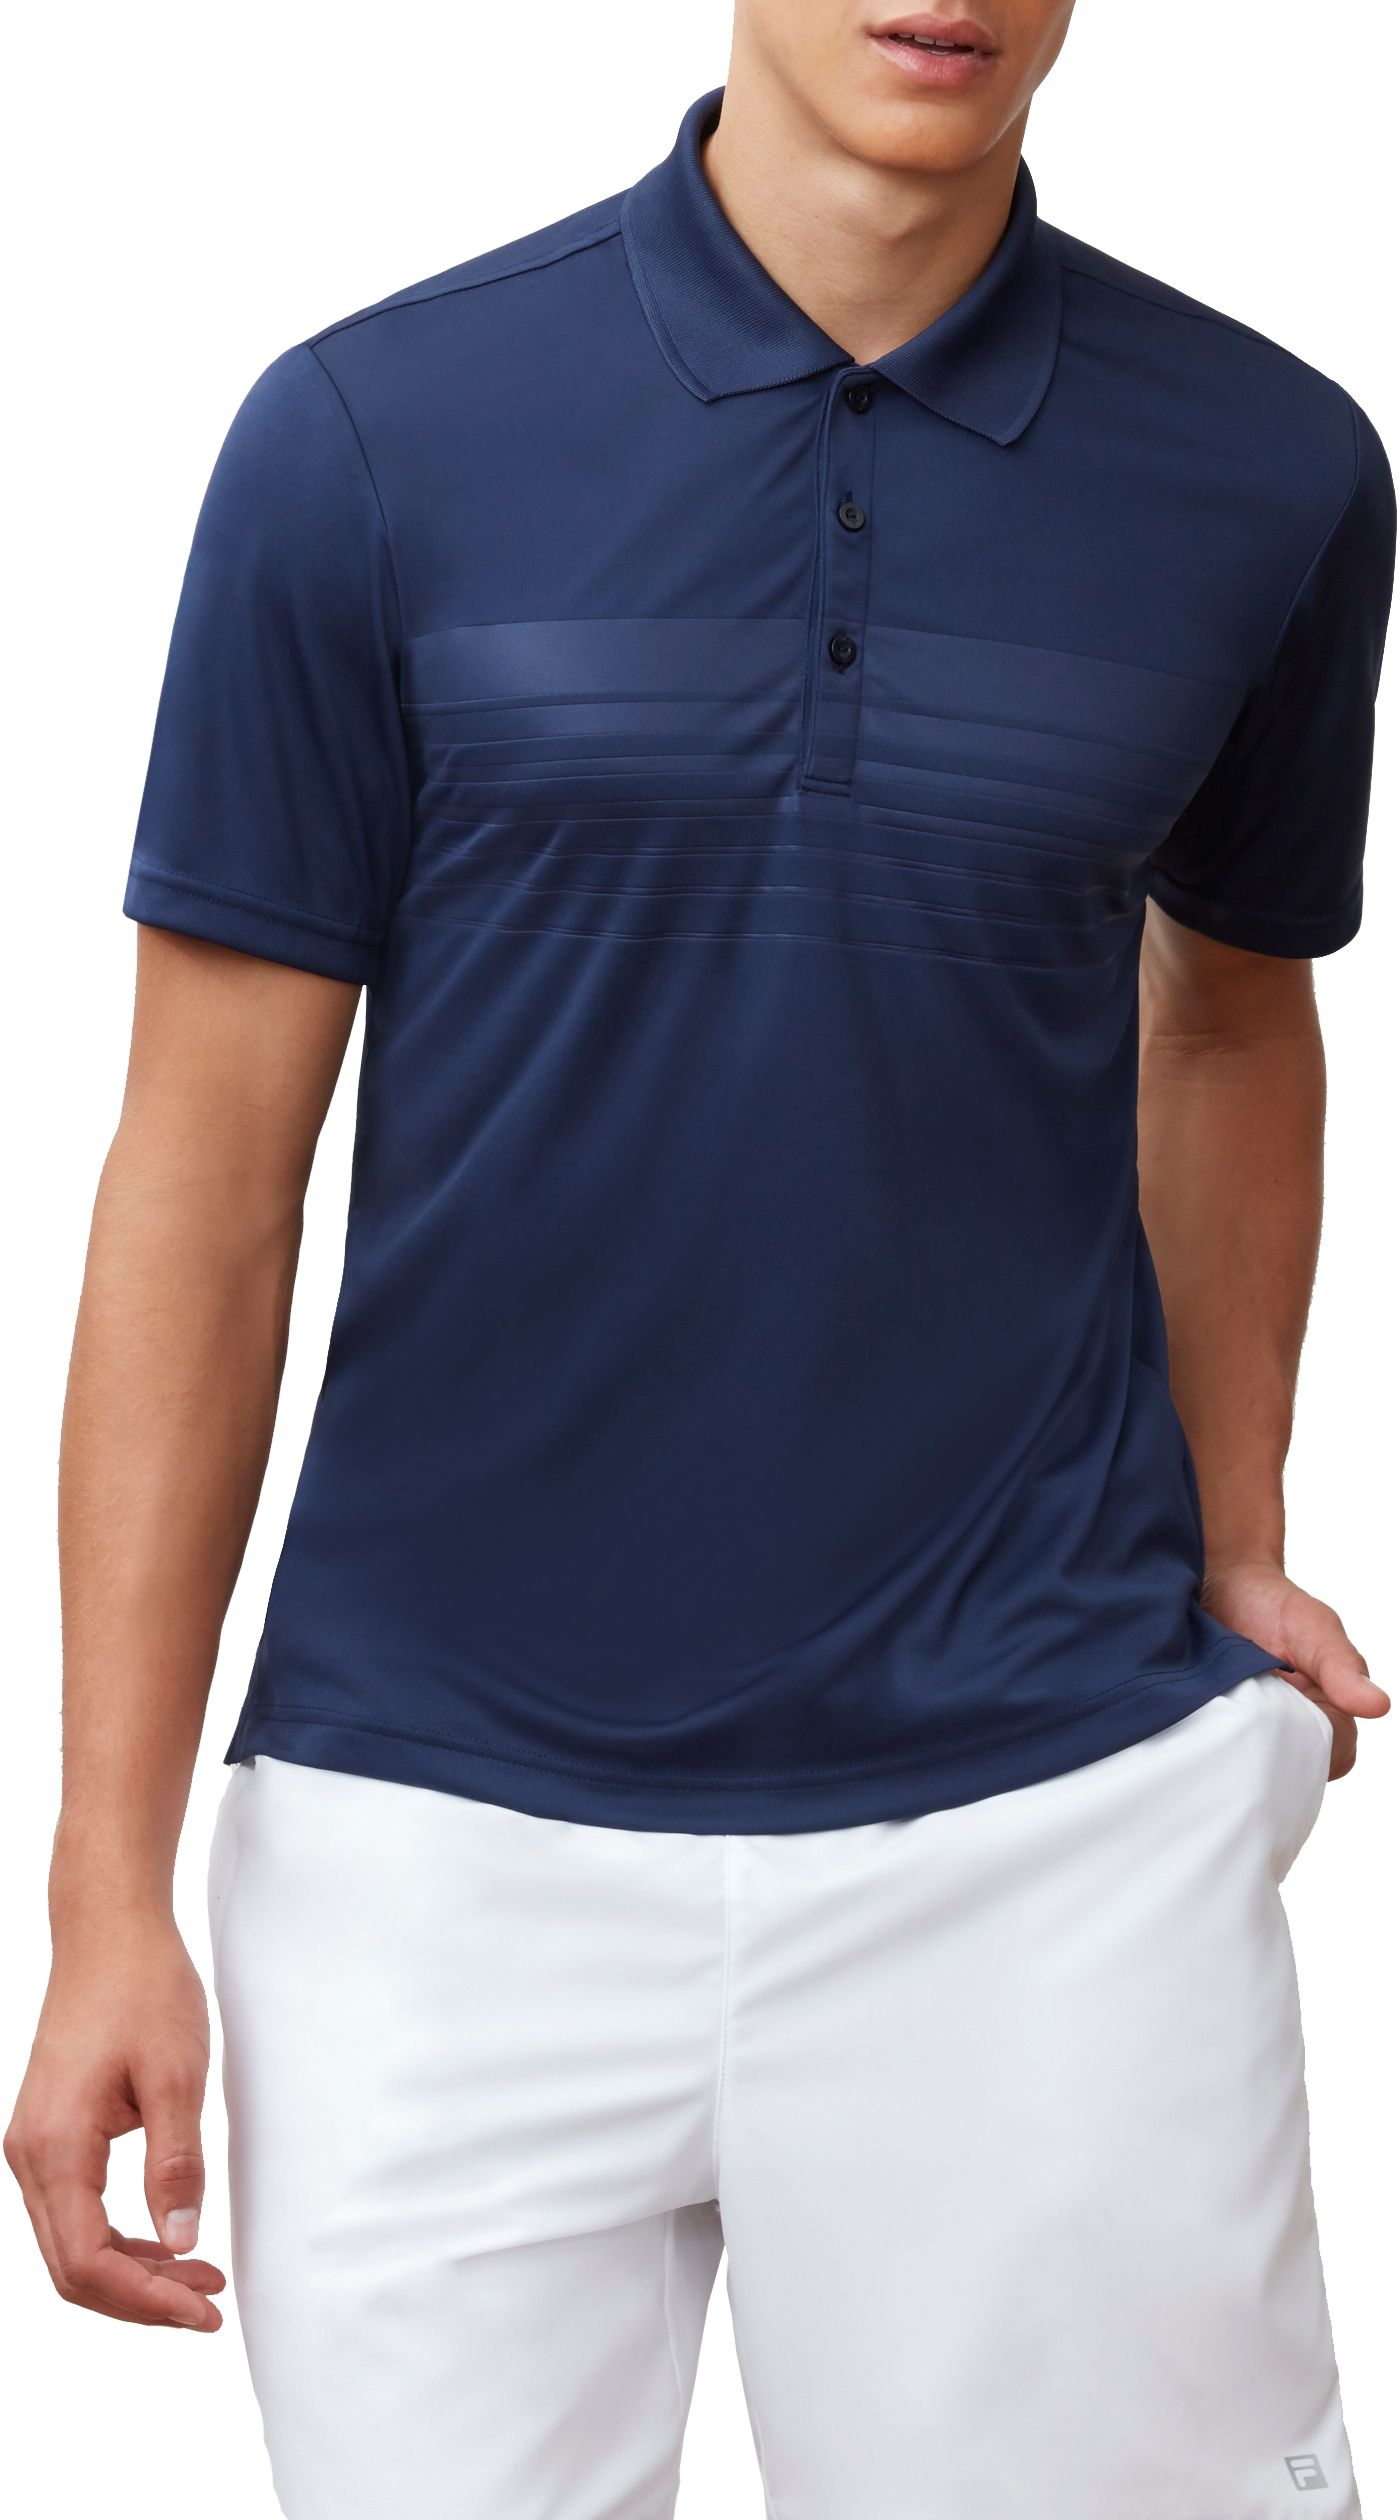 Fila Men's Embossed Chest Stripe Tennis Polo